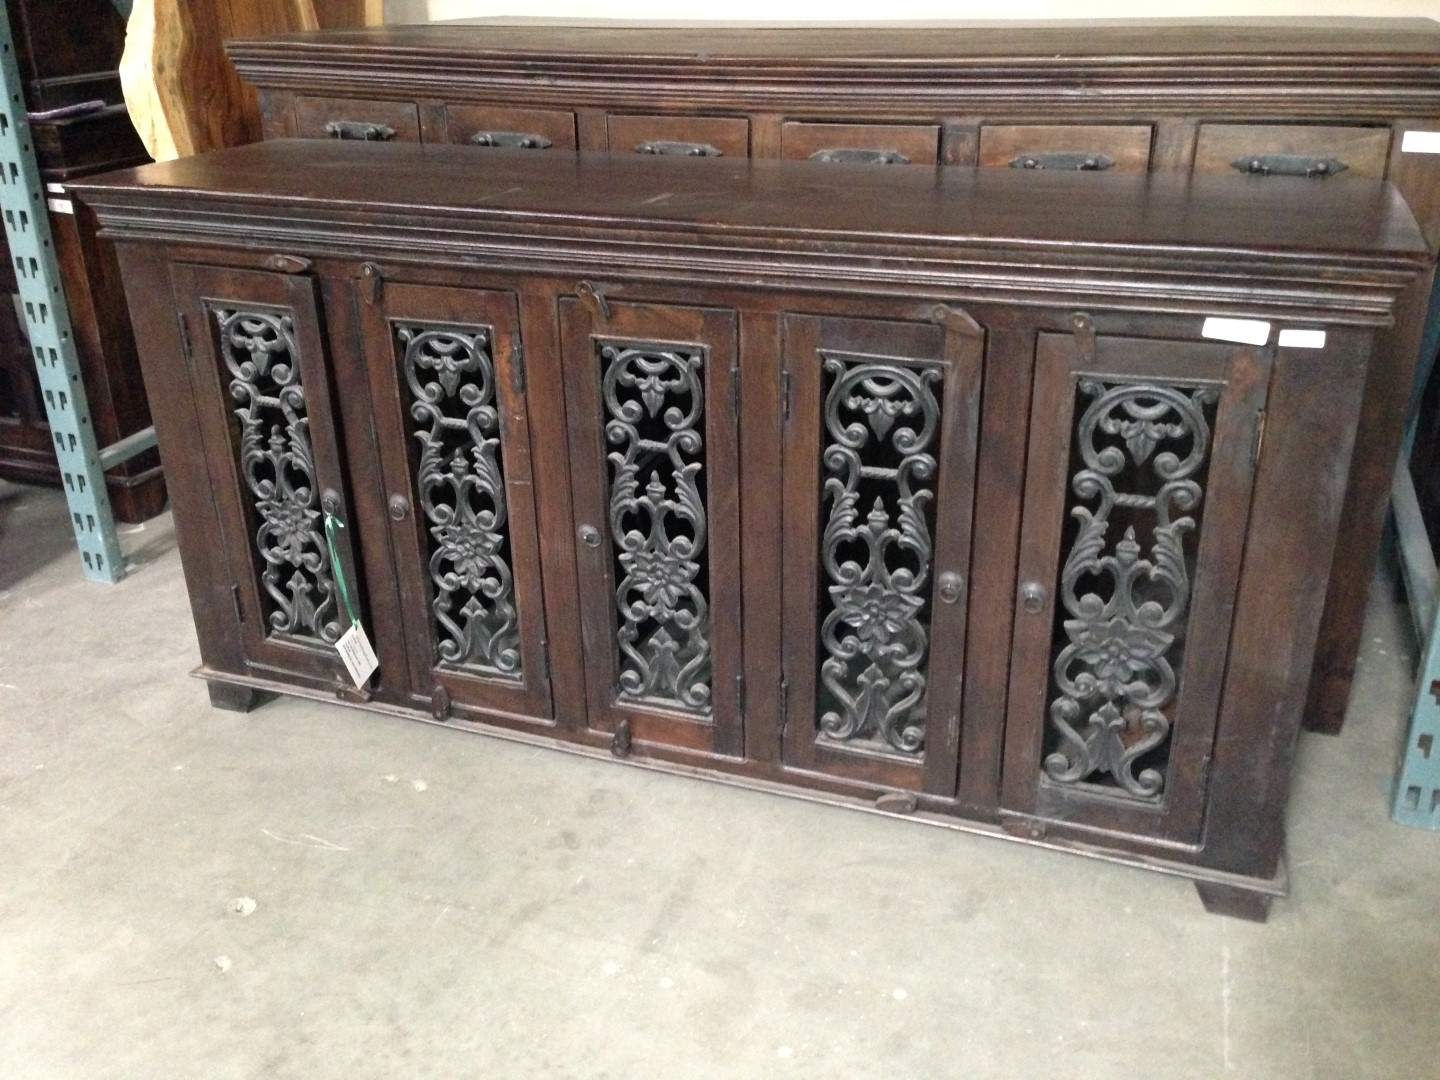 Imported Rustic Sideboards From India, China, Indonesia And Mexico within Iron Sideboards (Image 14 of 30)